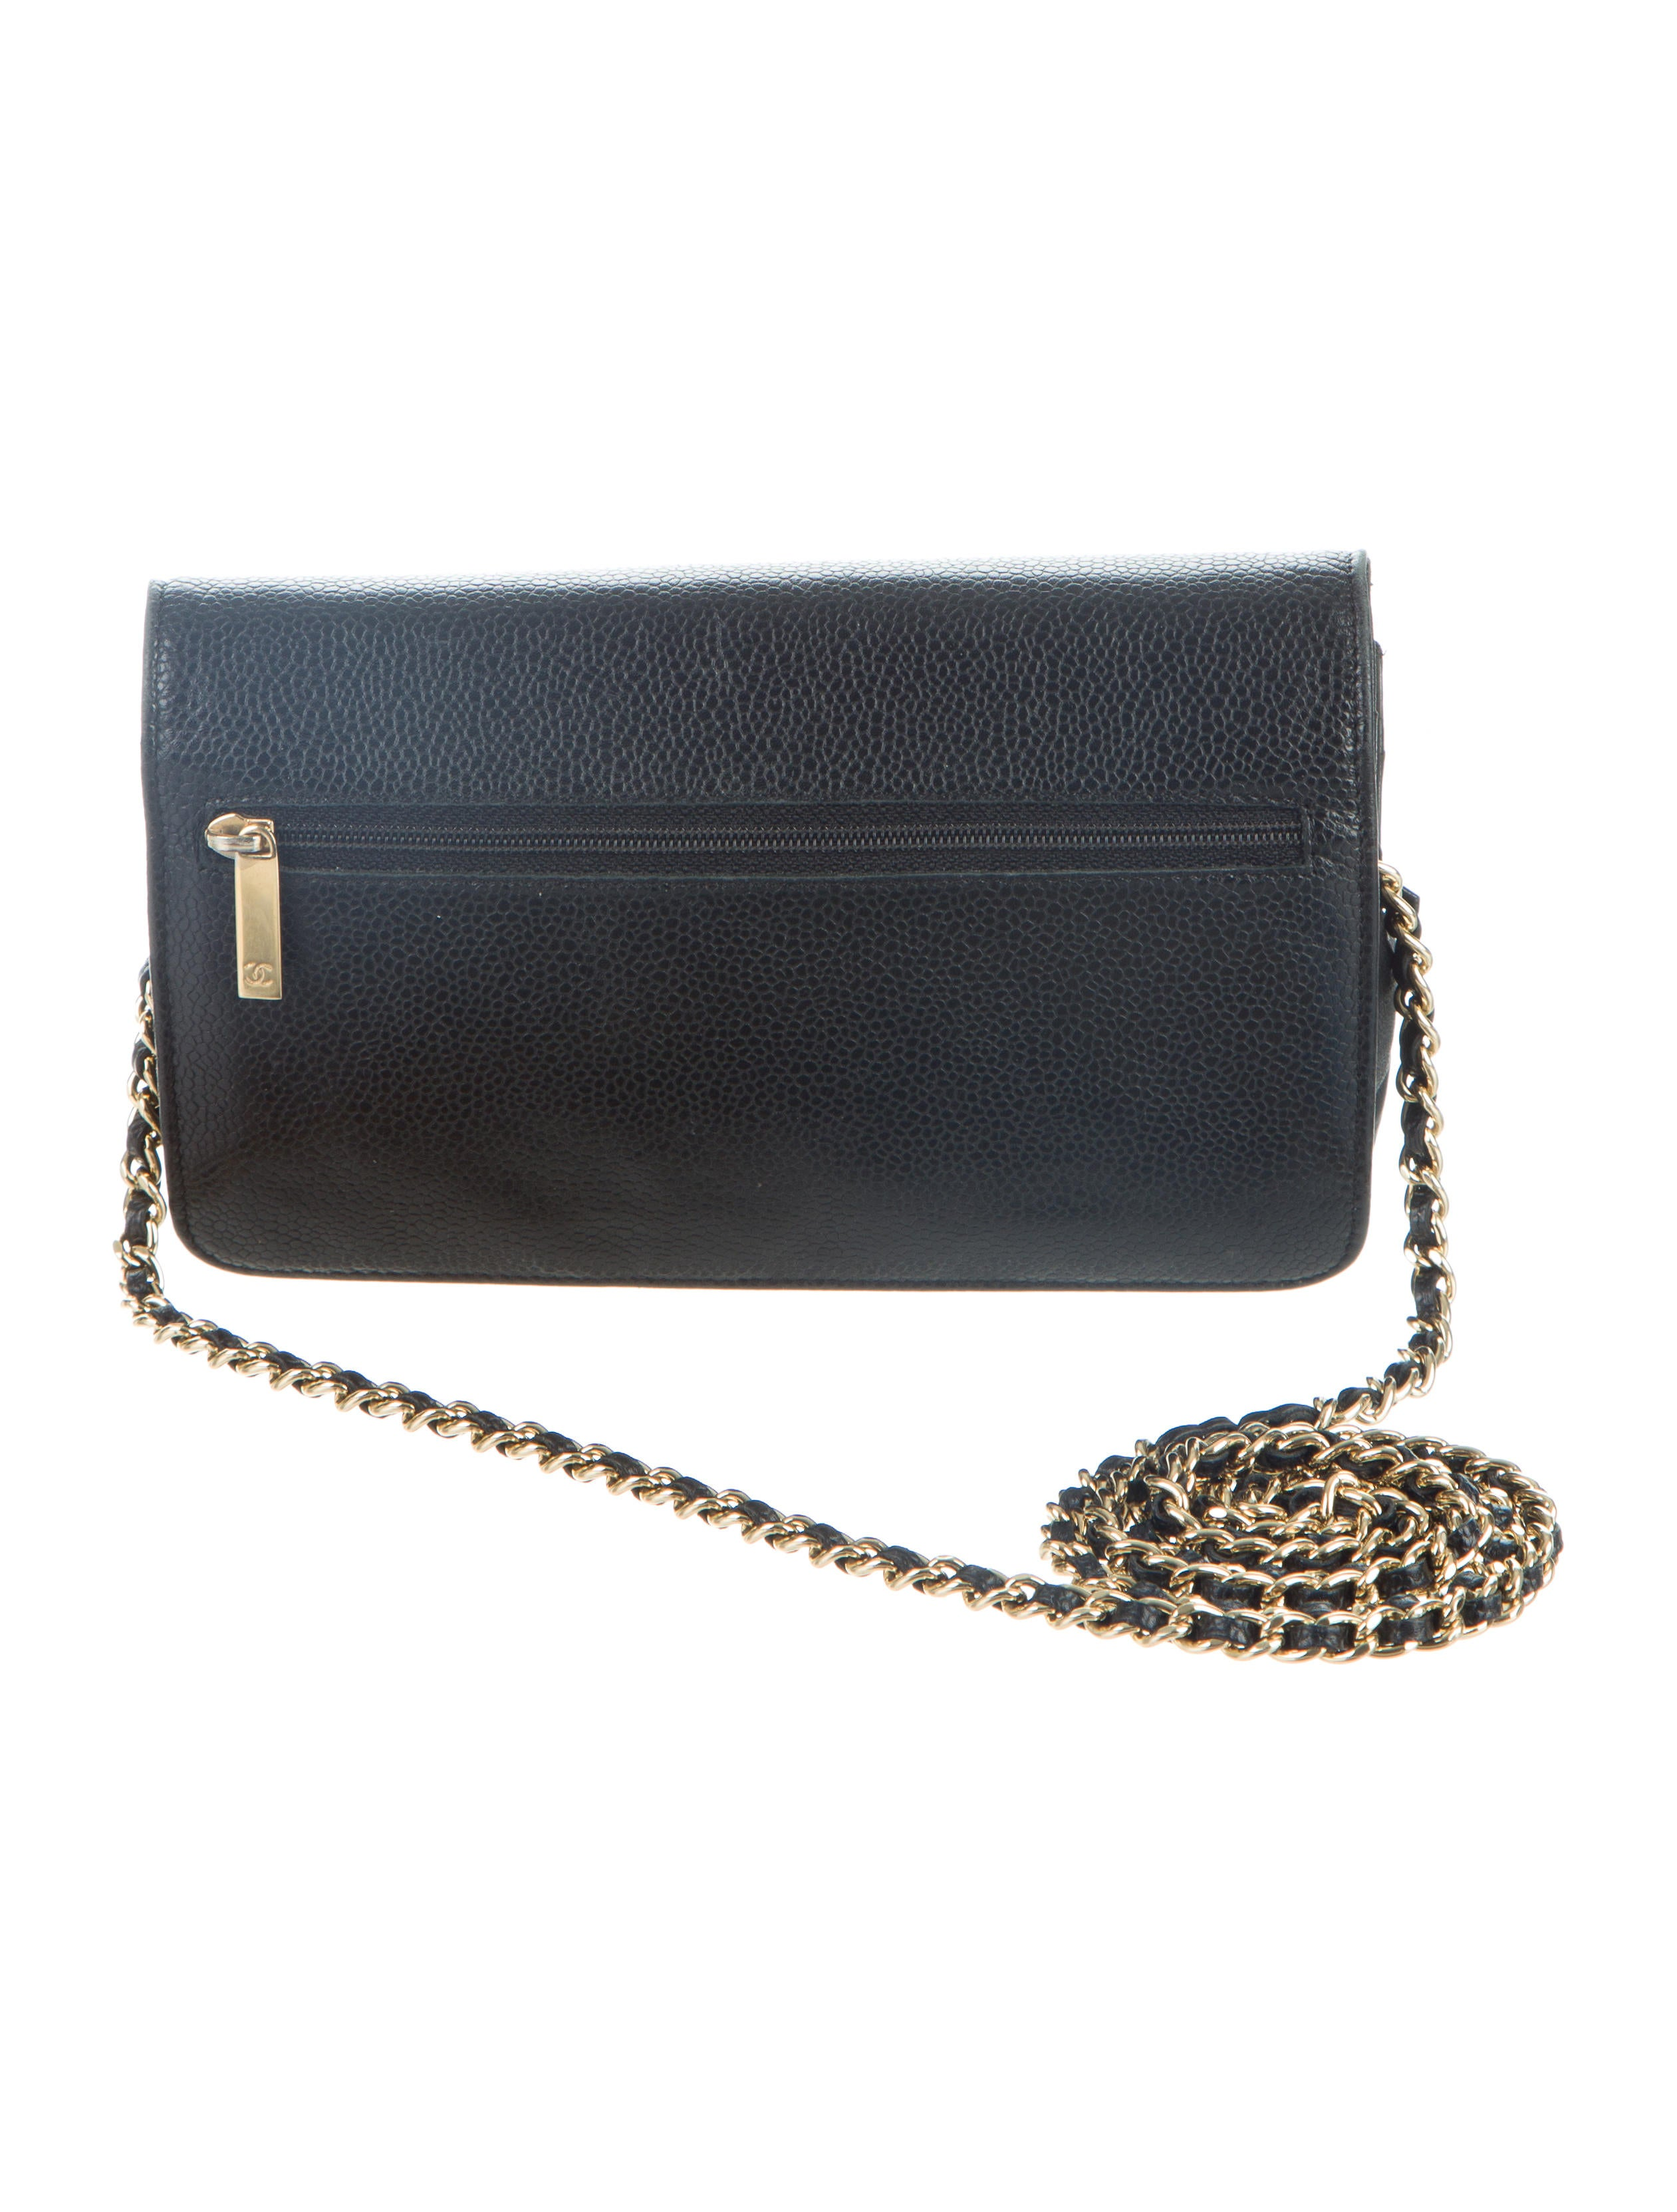 ad4d131ce51f Chanel Timeless Wallet On Chain - Handbags - CHA173168 .